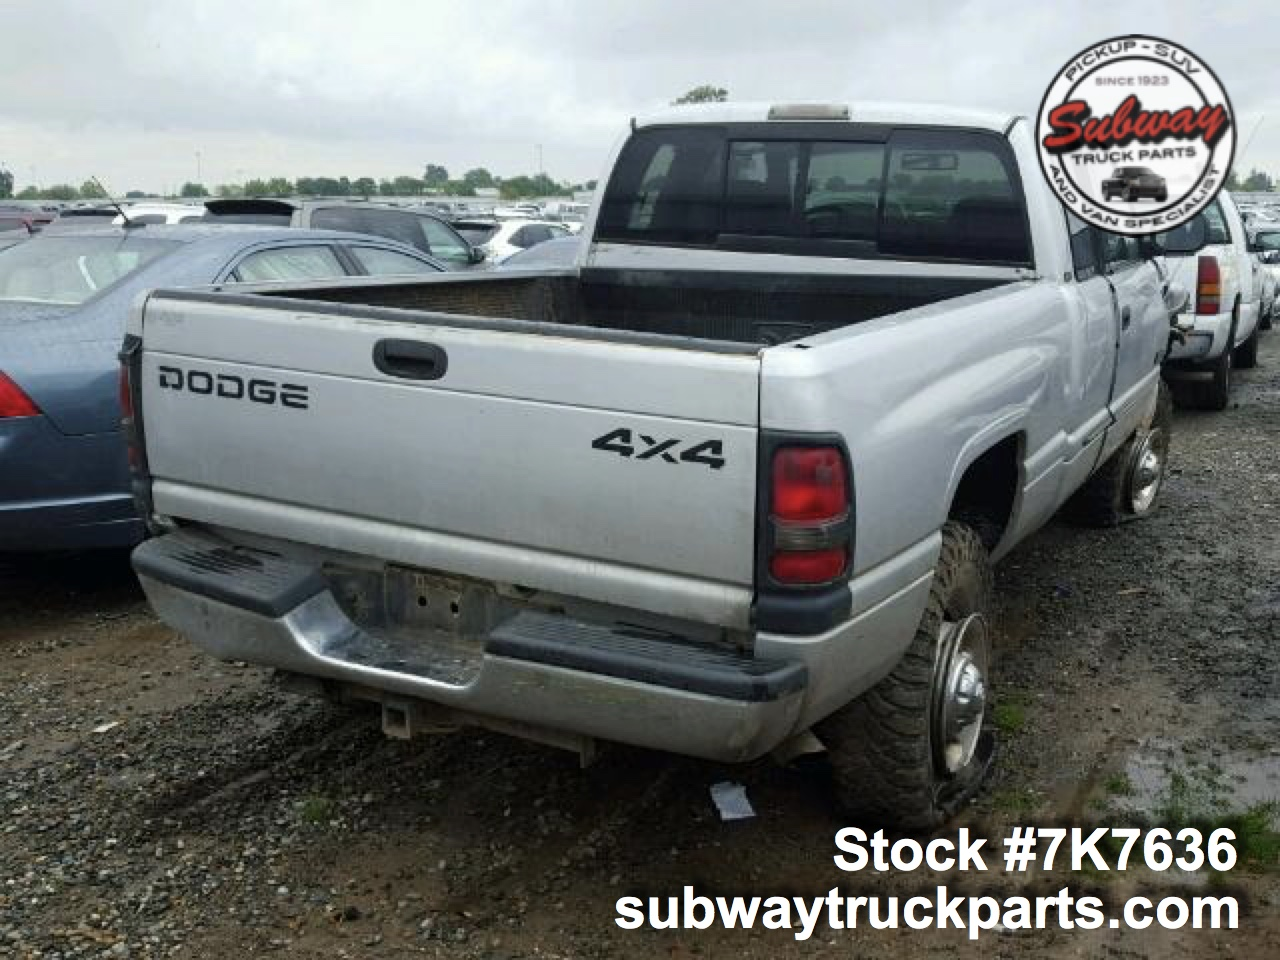 used 2002 dodge ram 2500 5 9l parts sacramento subway truck parts. Black Bedroom Furniture Sets. Home Design Ideas